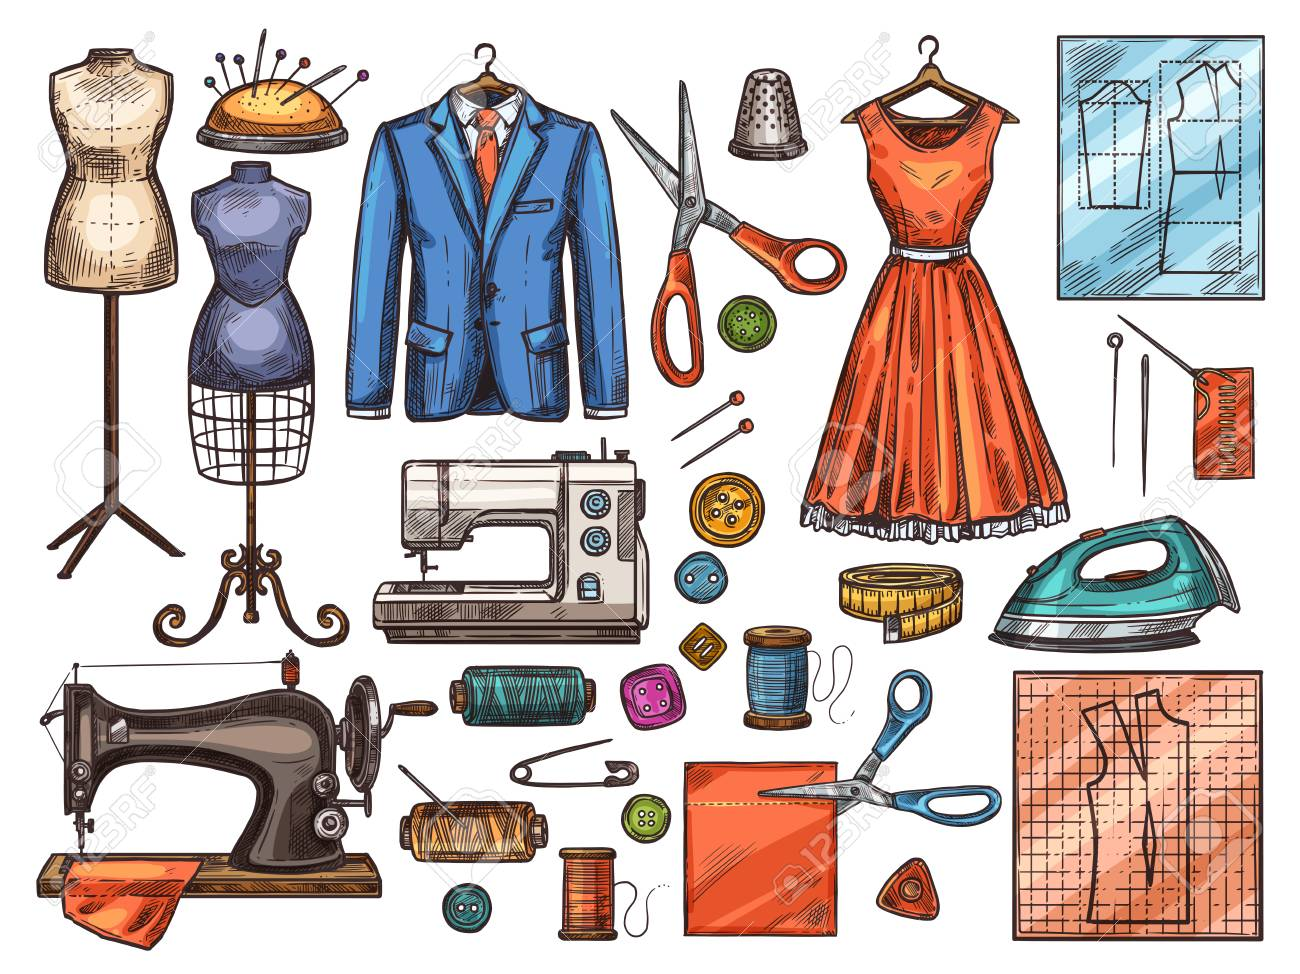 Sewing Tool And Tailor Equipment Sketch For Atelier Or Fashion Royalty Free Cliparts Vectors And Stock Illustration Image 121823324